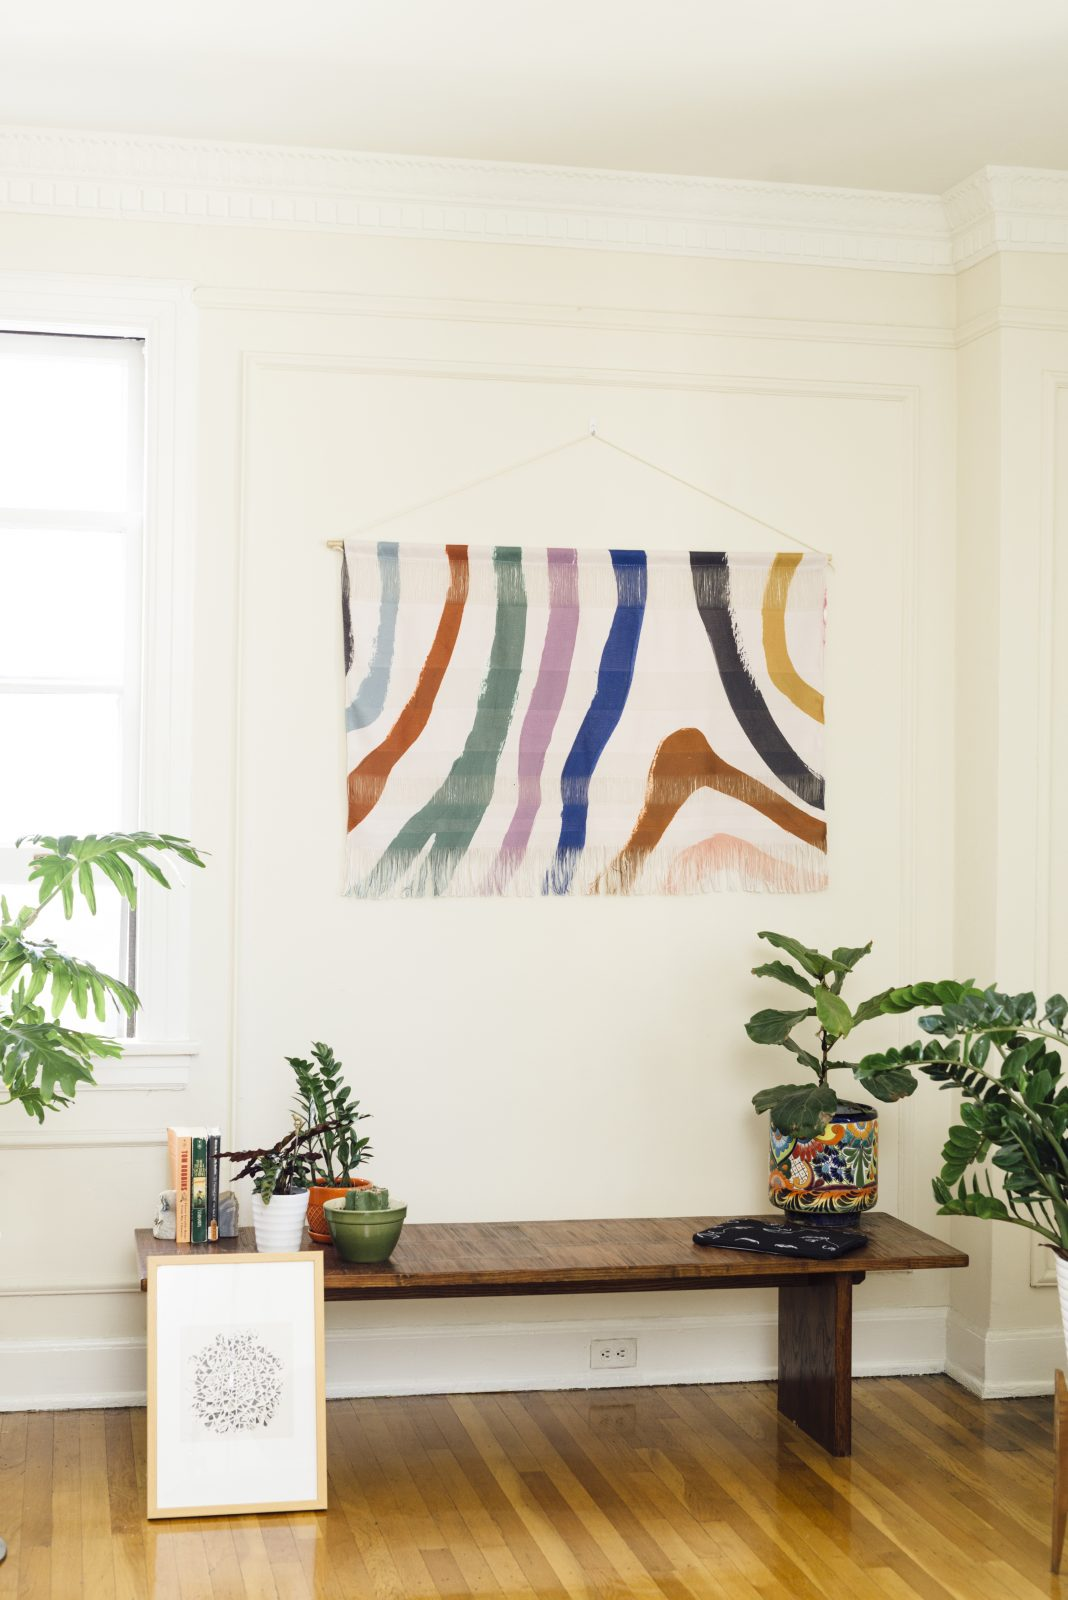 Shop wall hangings here